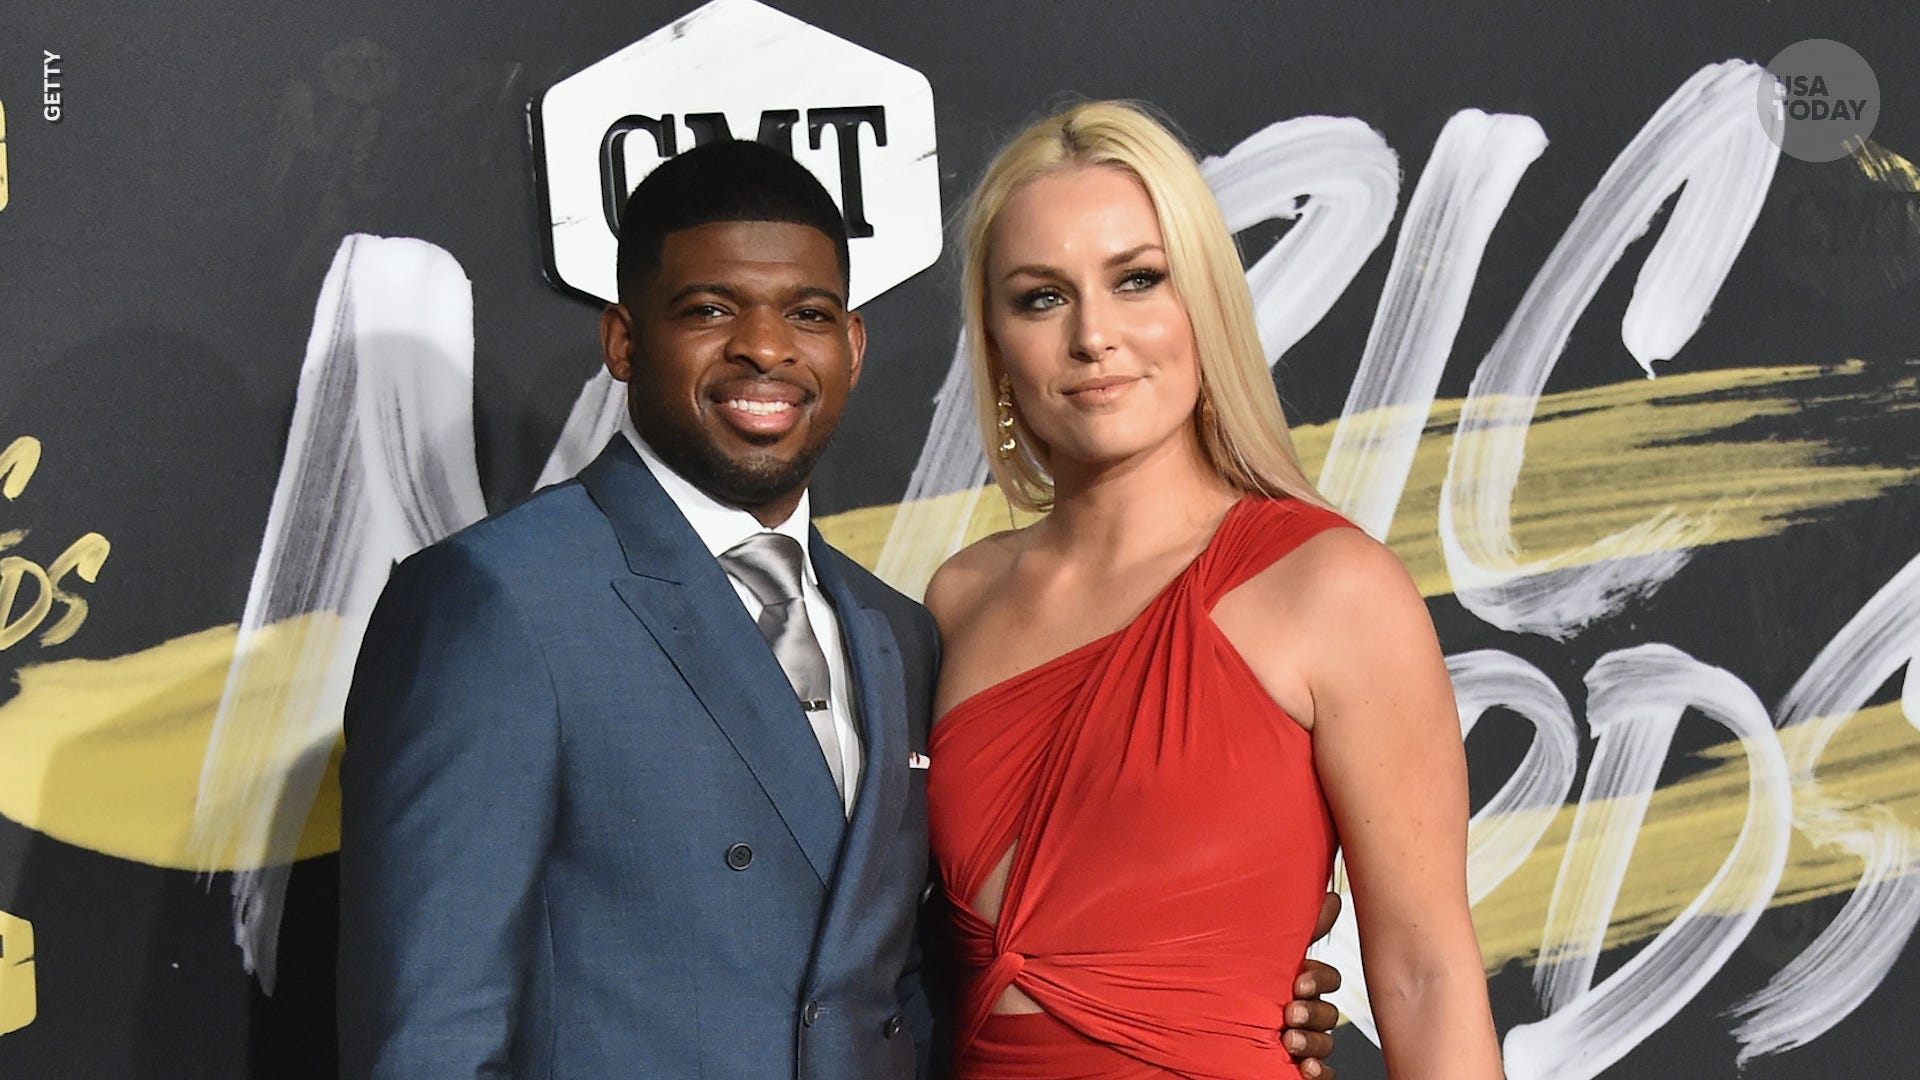 Lindsey Vonn Proposes Gives Engagement Ring To Pk Subban He was born in 1970s, in generation x. who knows who better p k subban vs lindsey vonn